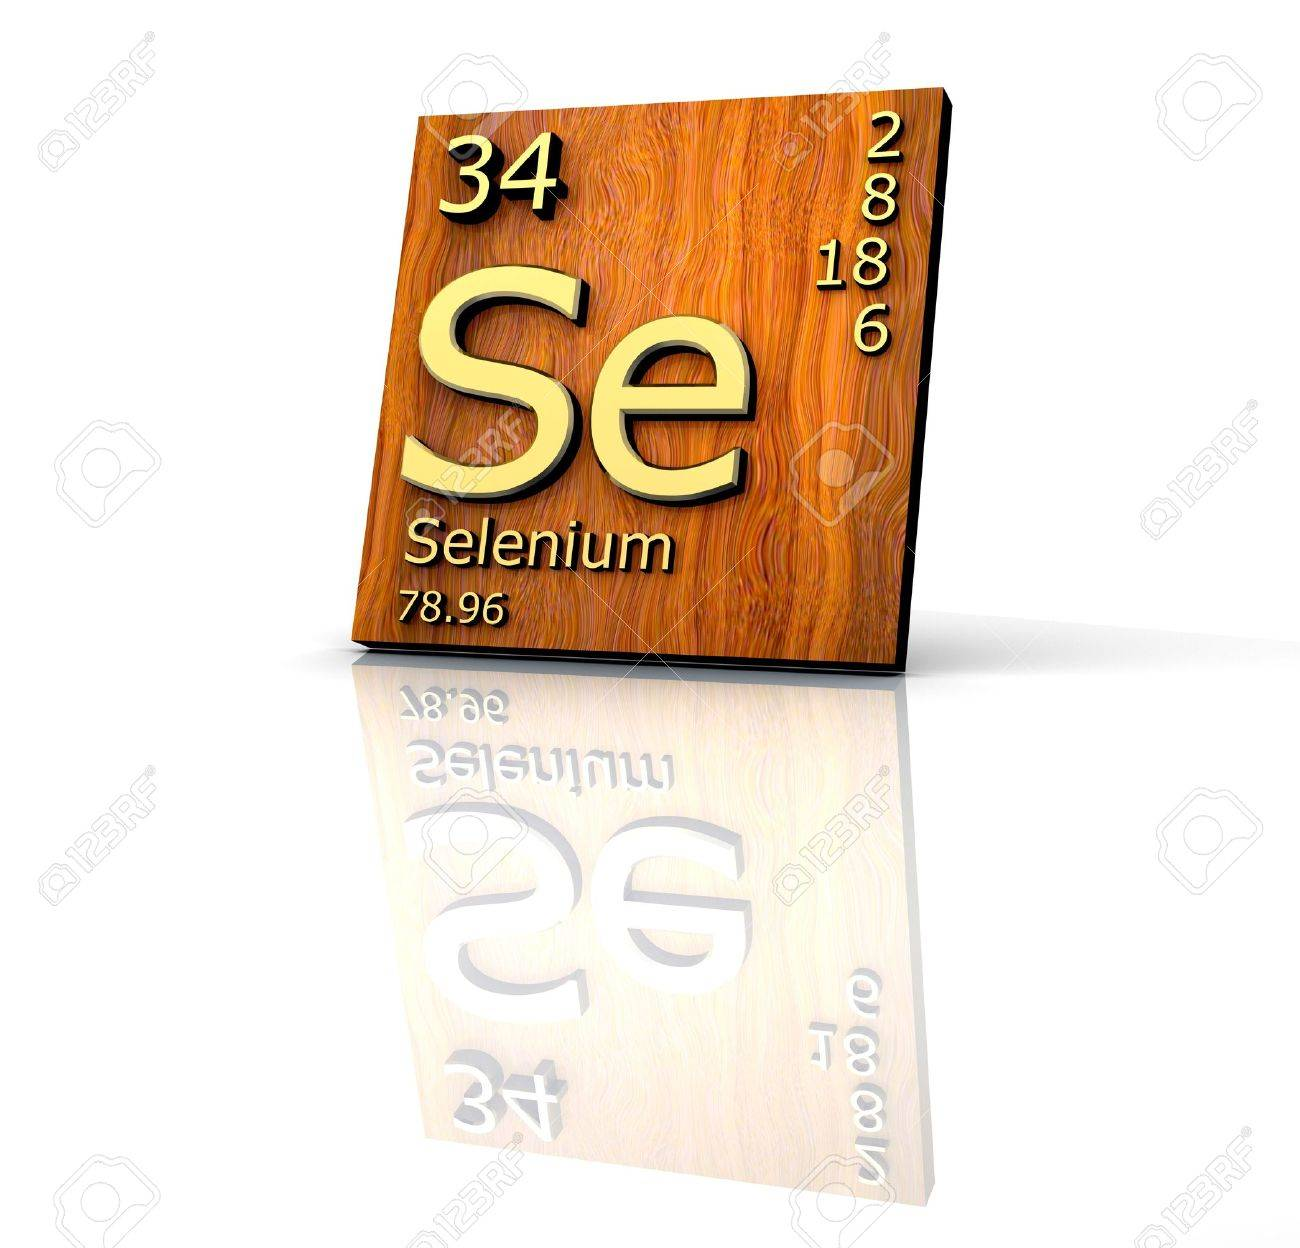 Selenium form periodic table of elements wood board 3d made selenium form periodic table of elements wood board 3d made stock photo 7119588 gamestrikefo Images